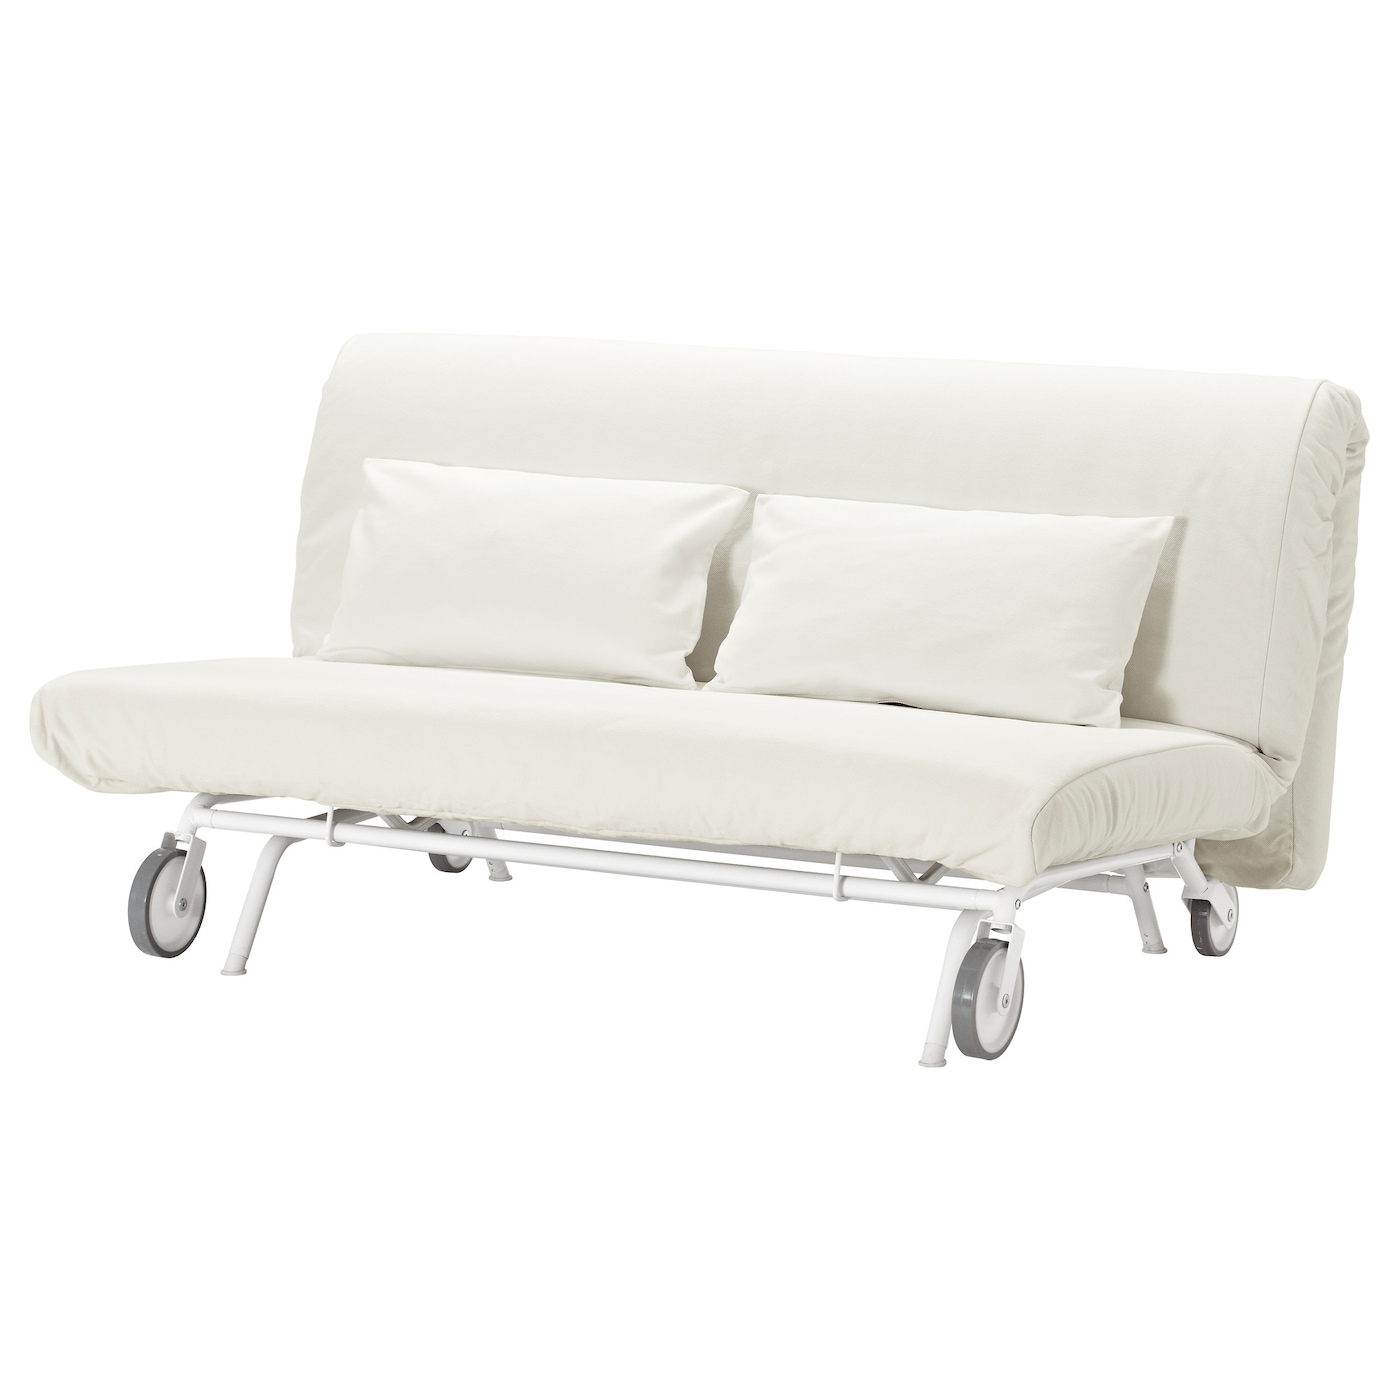 IKEA PS MURBO Two seat sofa bed Gräsbo white IKEA